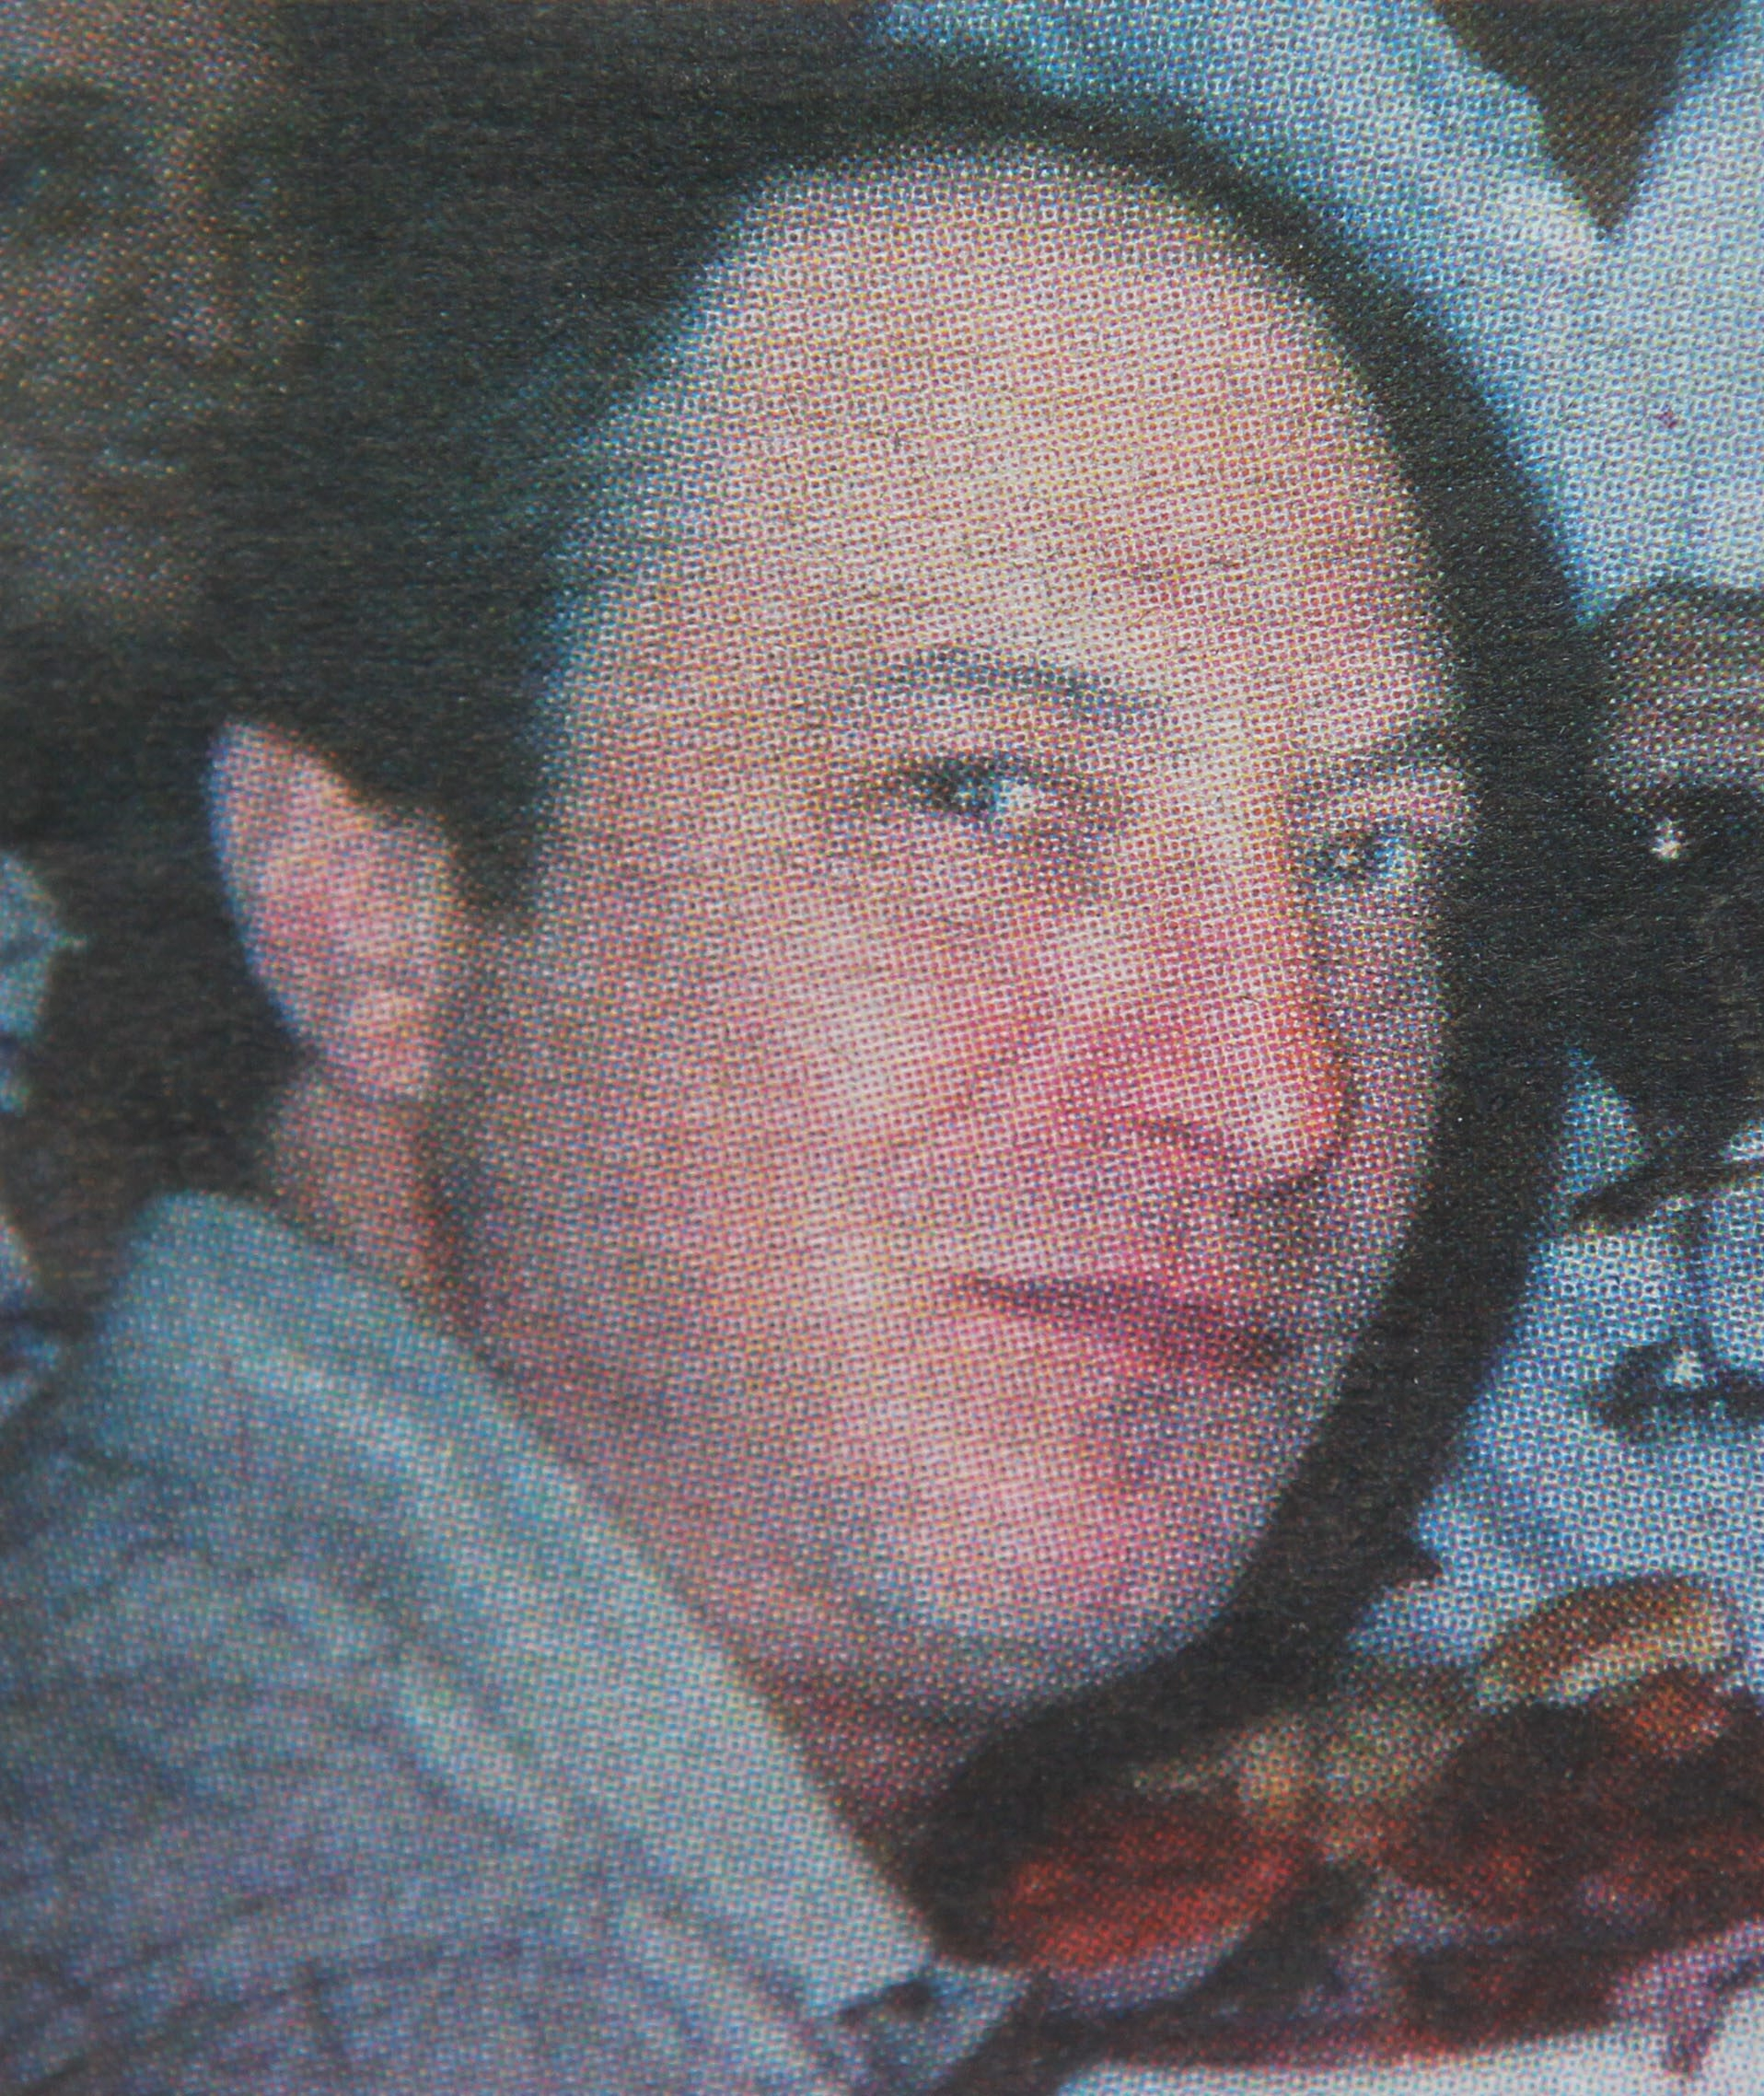 Barry Moss was struck and killed on Route 5 in Evans on Dec. 22, 2013.